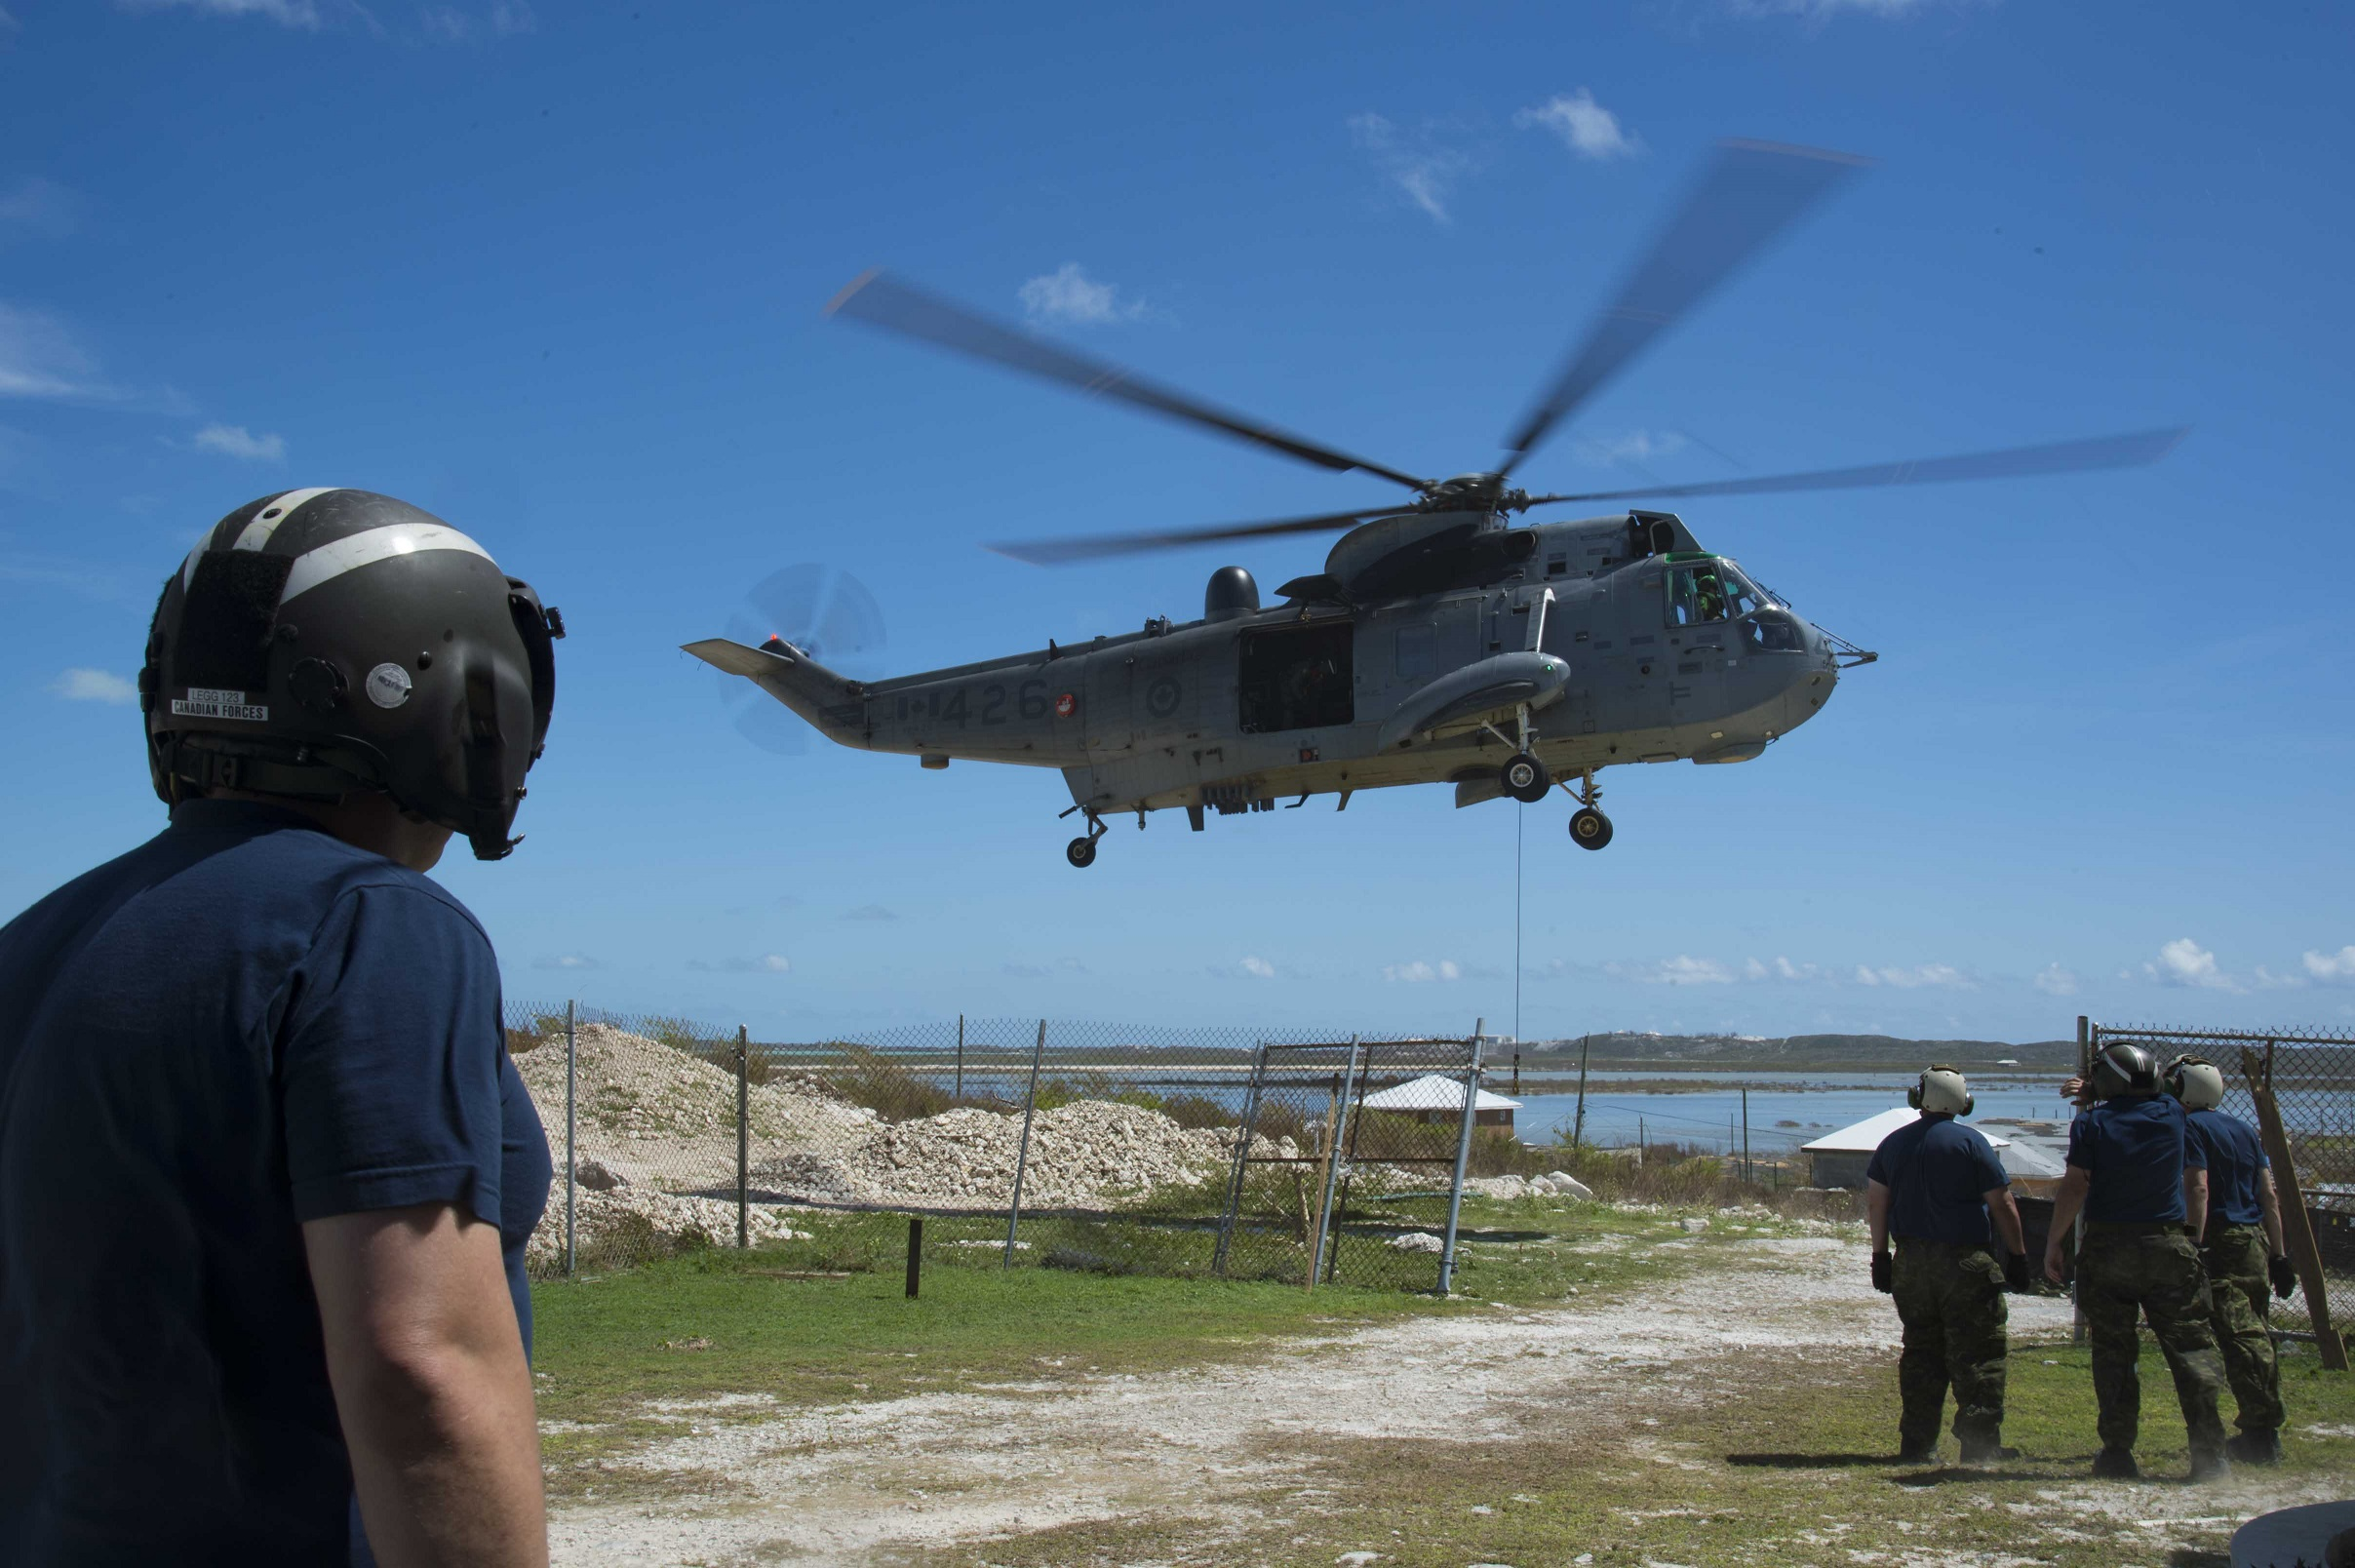 September 19, 2017. A CH-124 Sea King helicopter air lifts supplies to South Caicos Island during Operation RENAISSANCE IRMA, the Hurricane Irma humanitarian aid mission in the Caribbean, on September 19, 2017. Photo: MCpl Chris Ringius, Formation Imaging Services Halifax